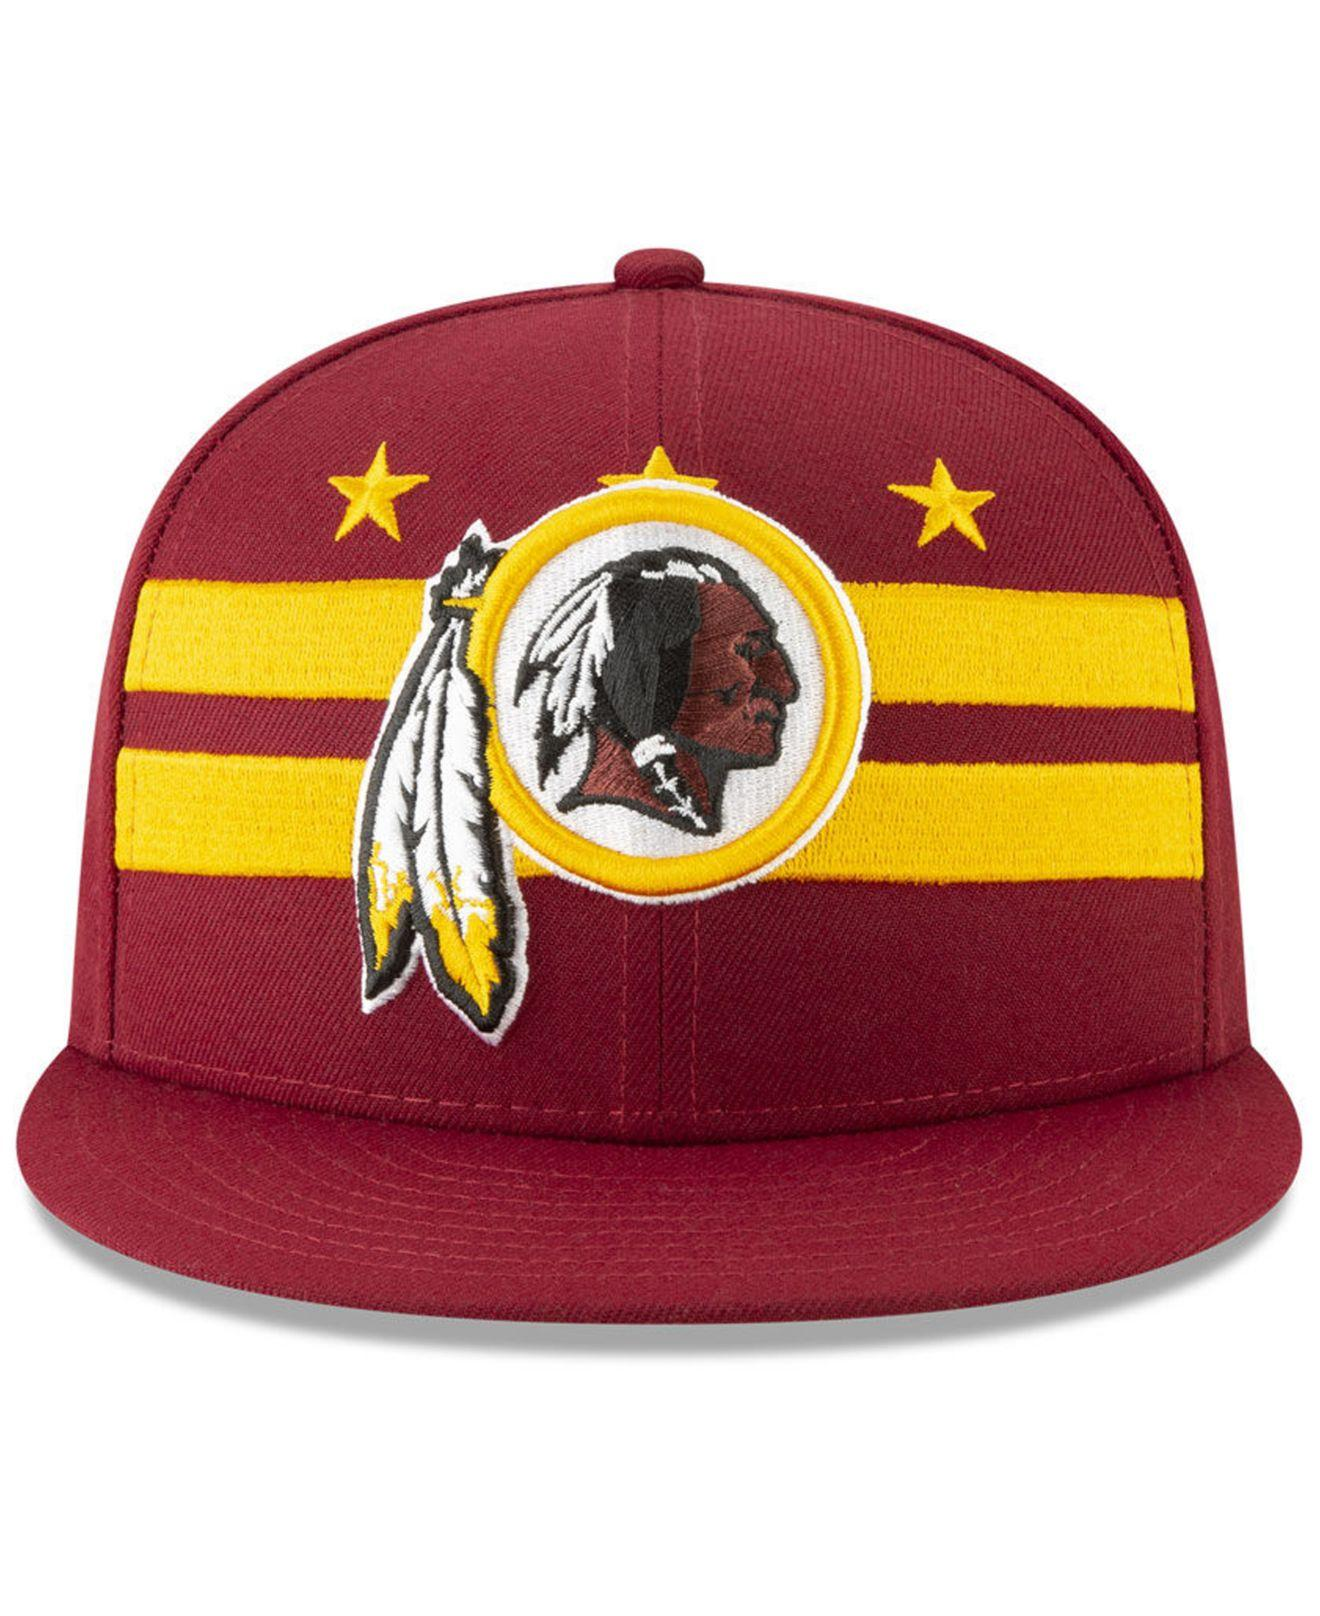 9ddde04c11e9d9 Lyst - KTZ Washington Redskins 2019 Draft 59fifty Fitted Cap for Men